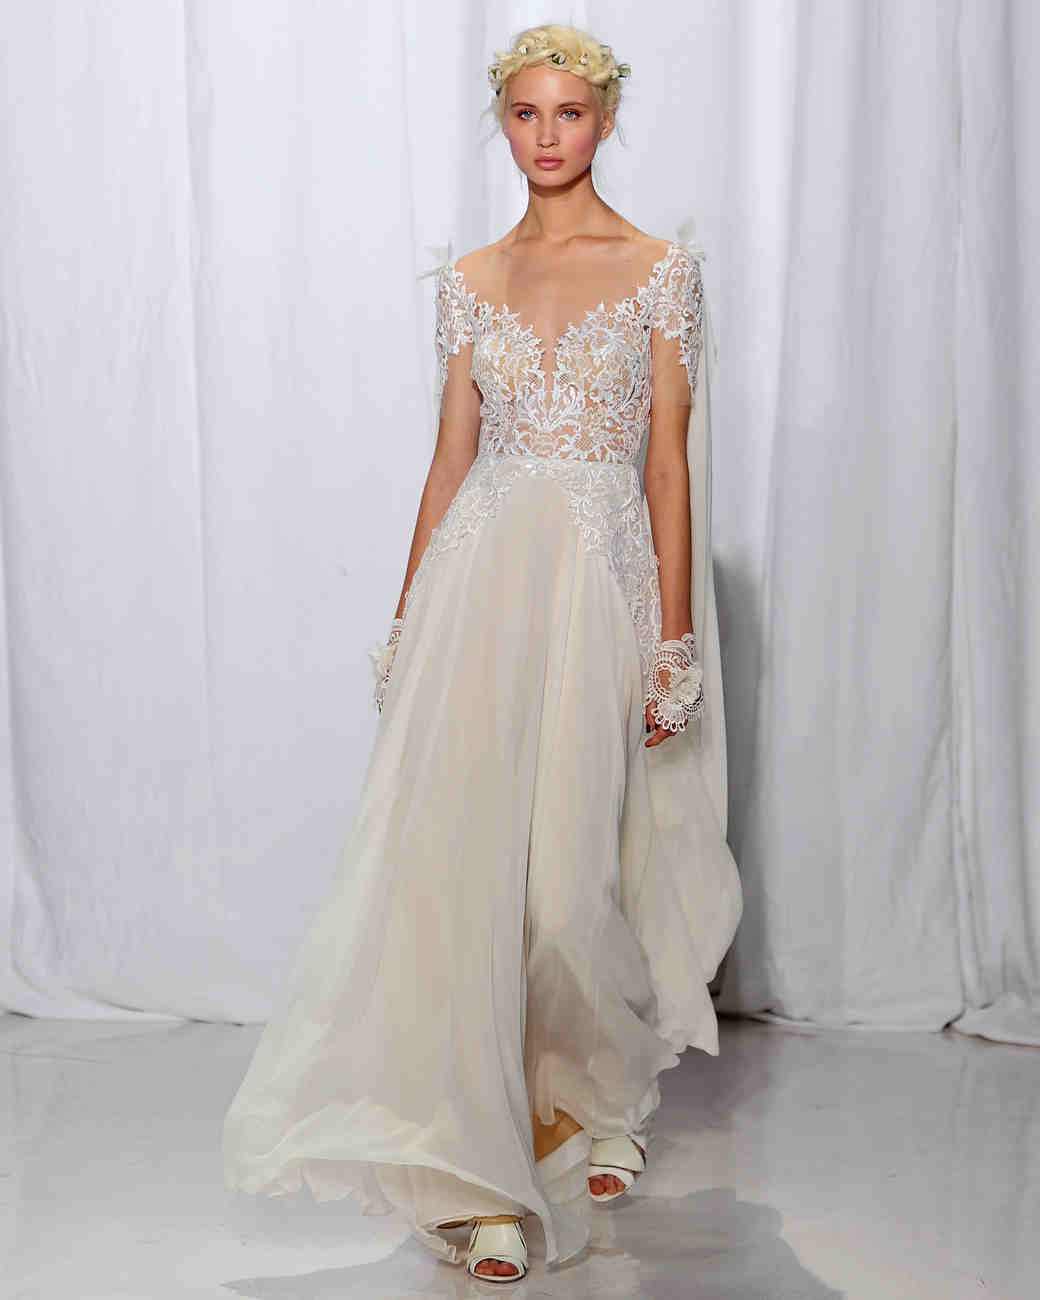 Reem acra fall 2017 wedding dress collection martha stewart weddings reem acra fall 2017 wedding dress collection junglespirit Gallery